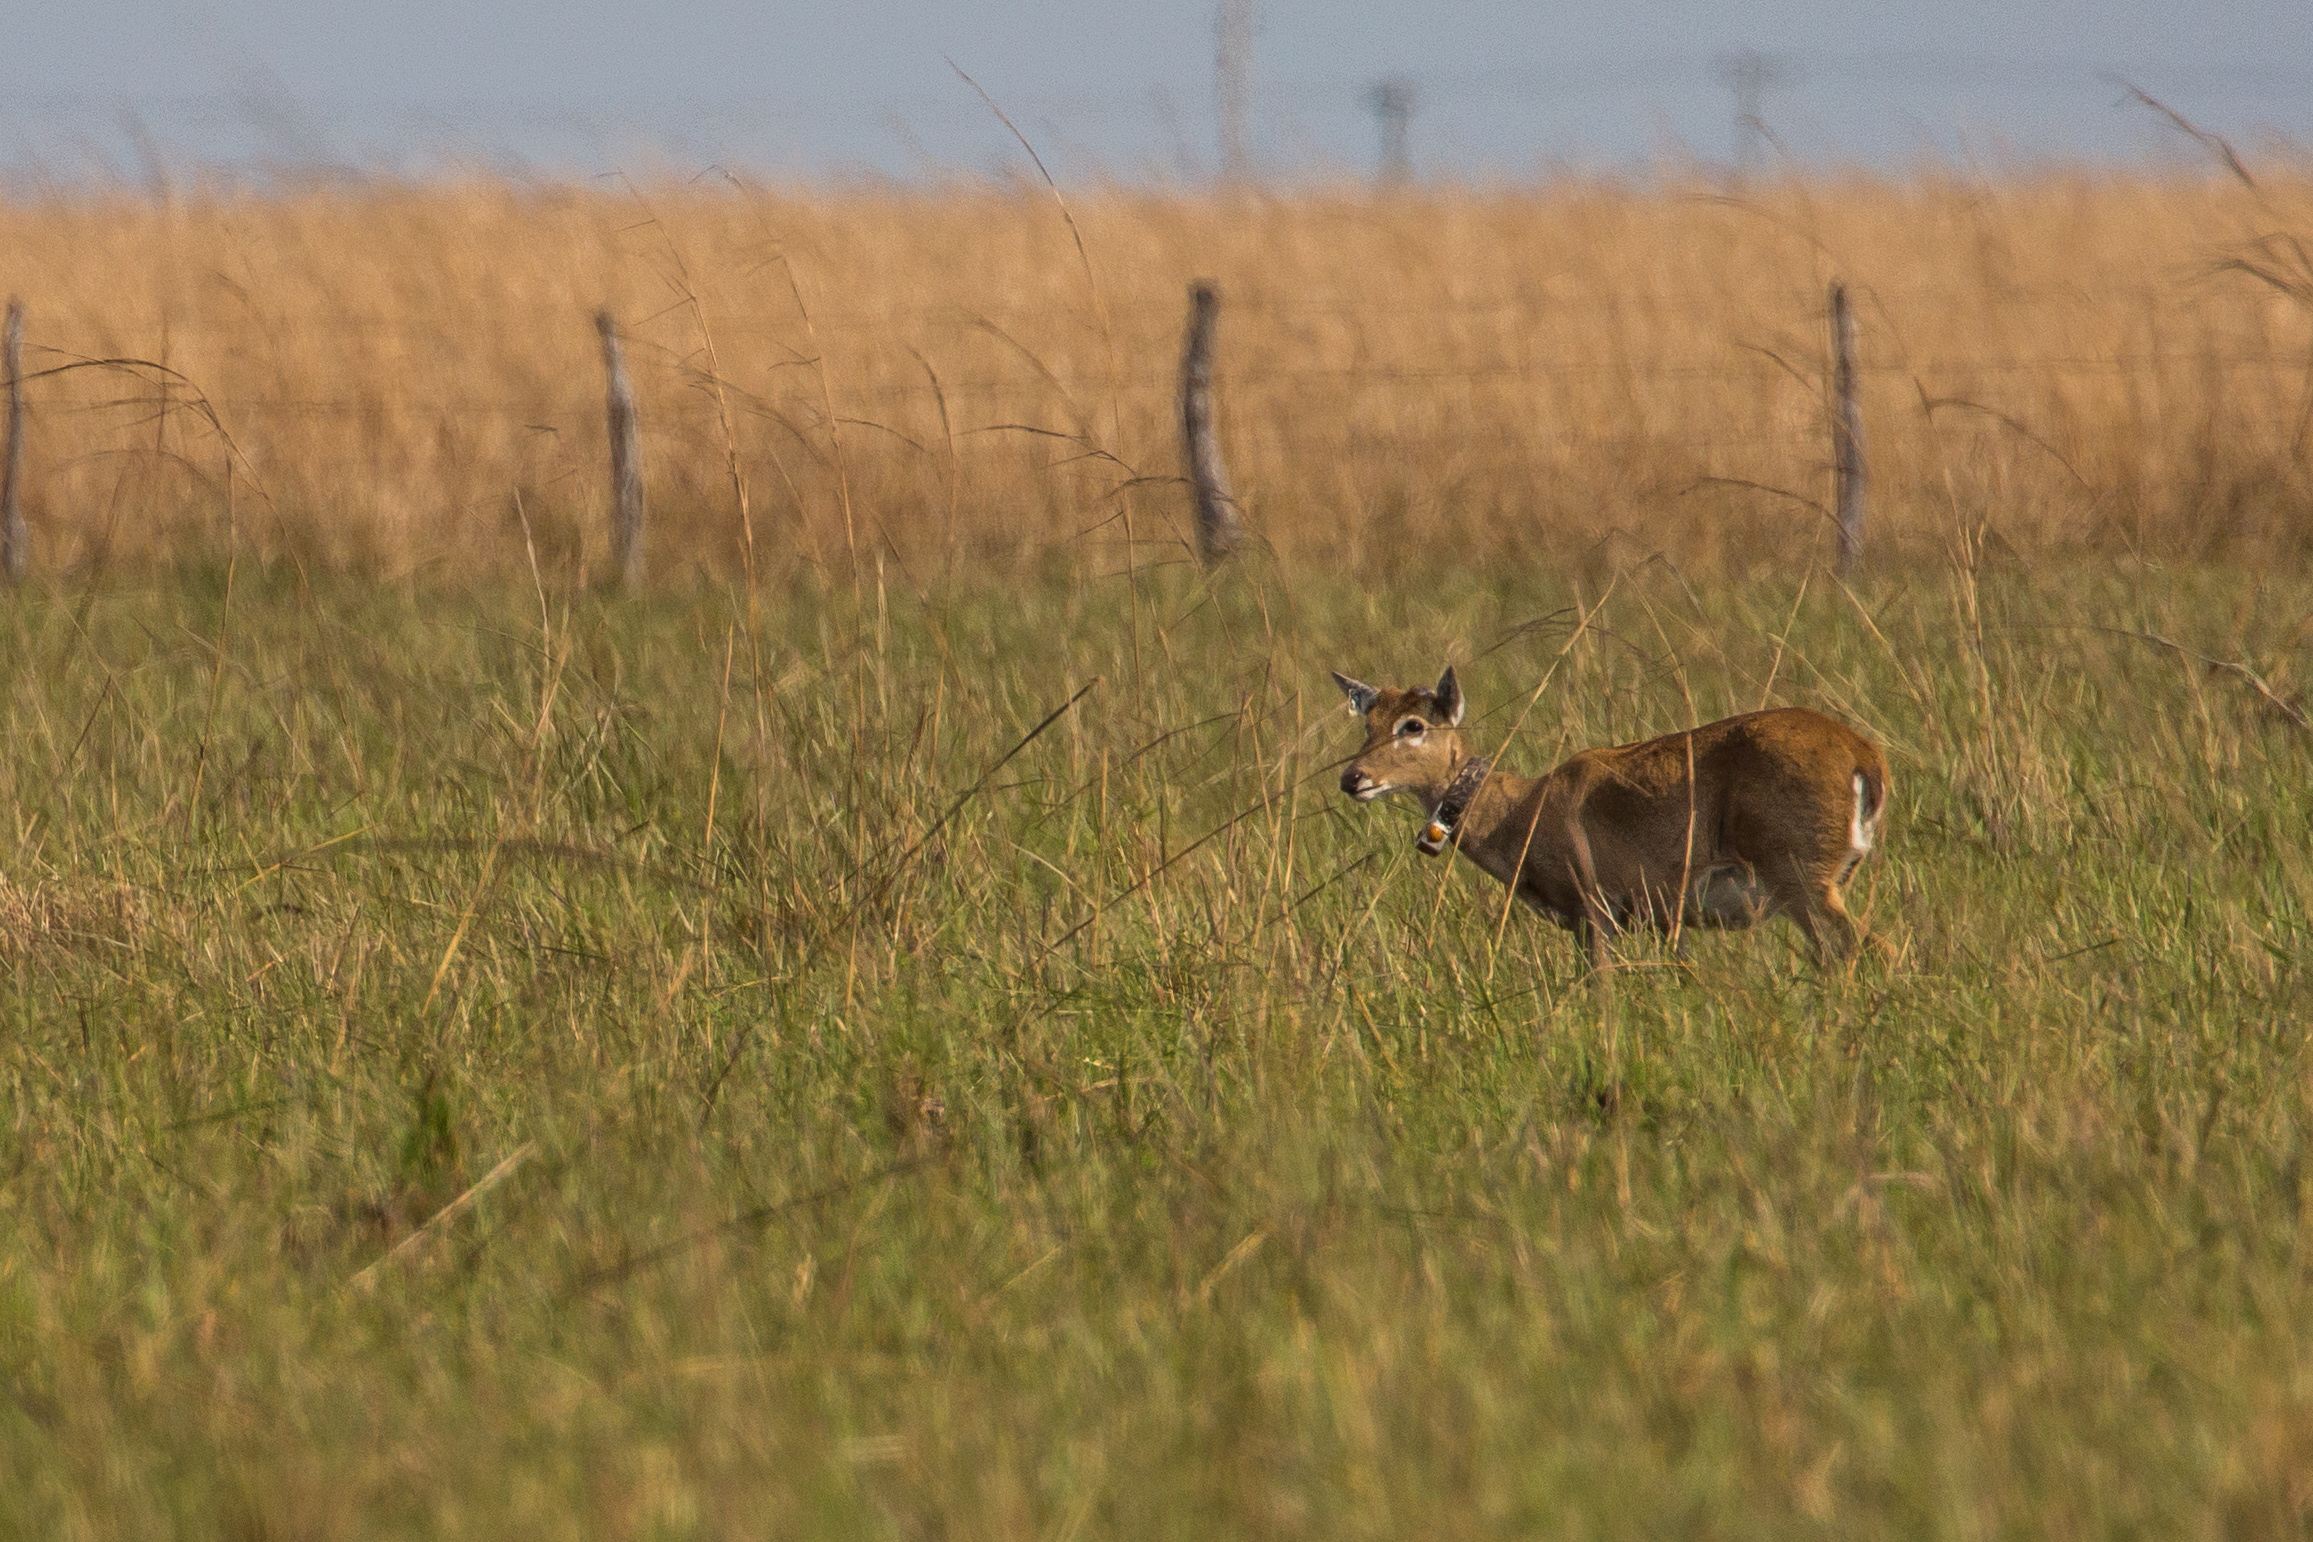 Pampas deer were relocated to the region in 2009.